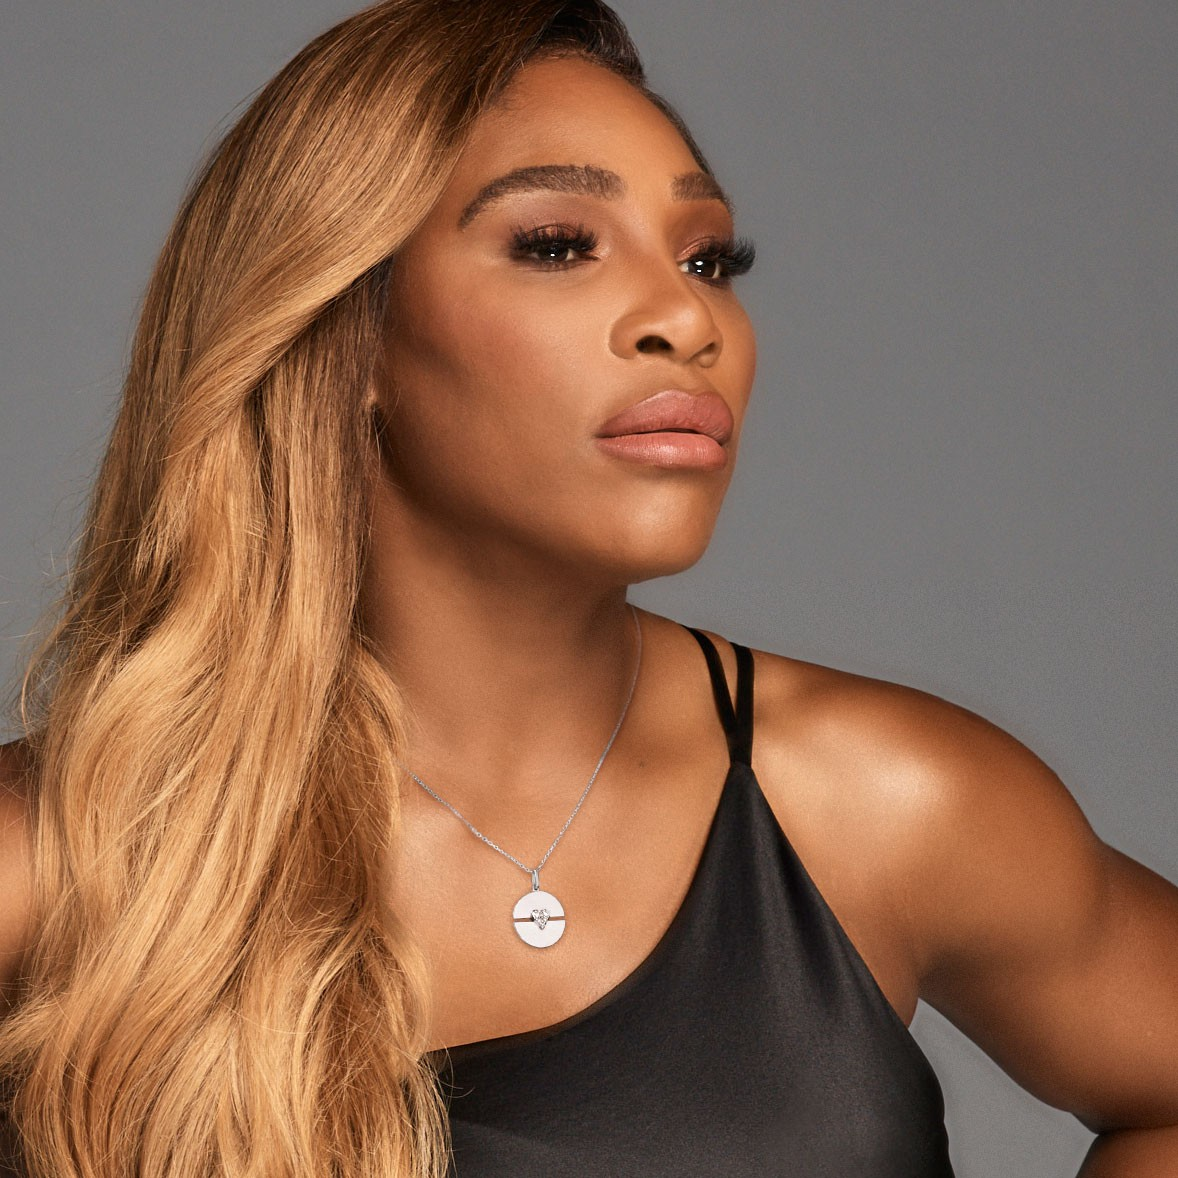 Serena Williams Jewelry to be Supporting Black small-business owners throughout February